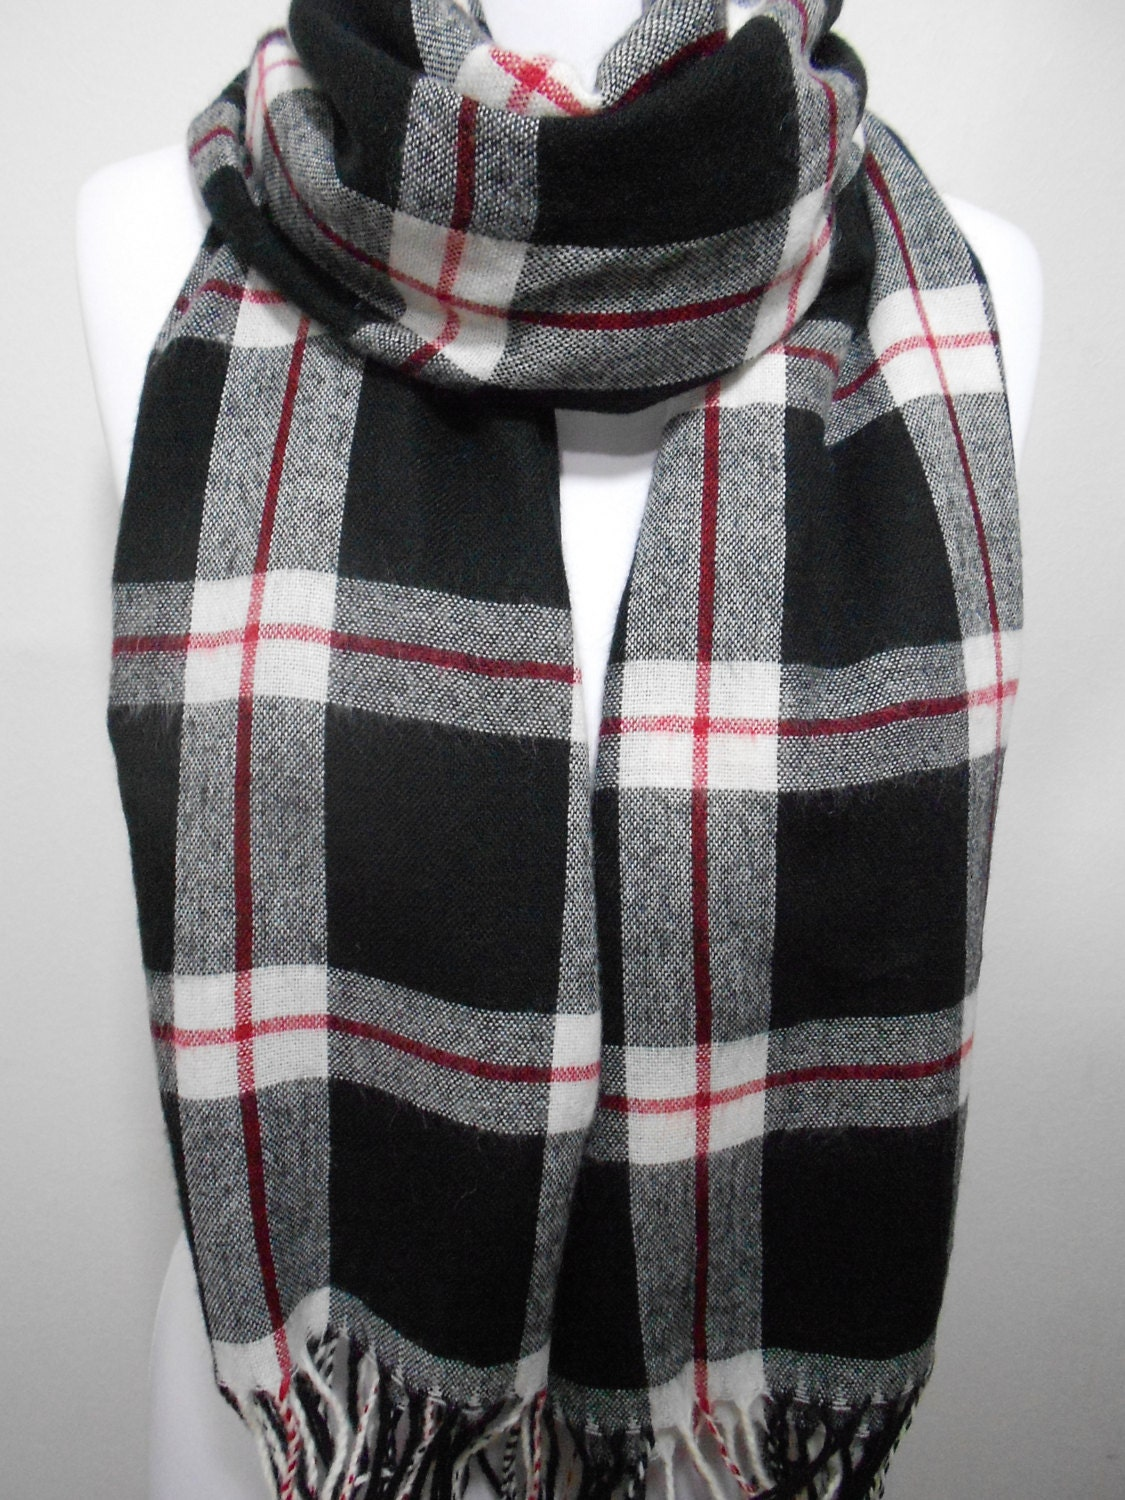 Find great deals on eBay for cowl and scarf. Shop with confidence.